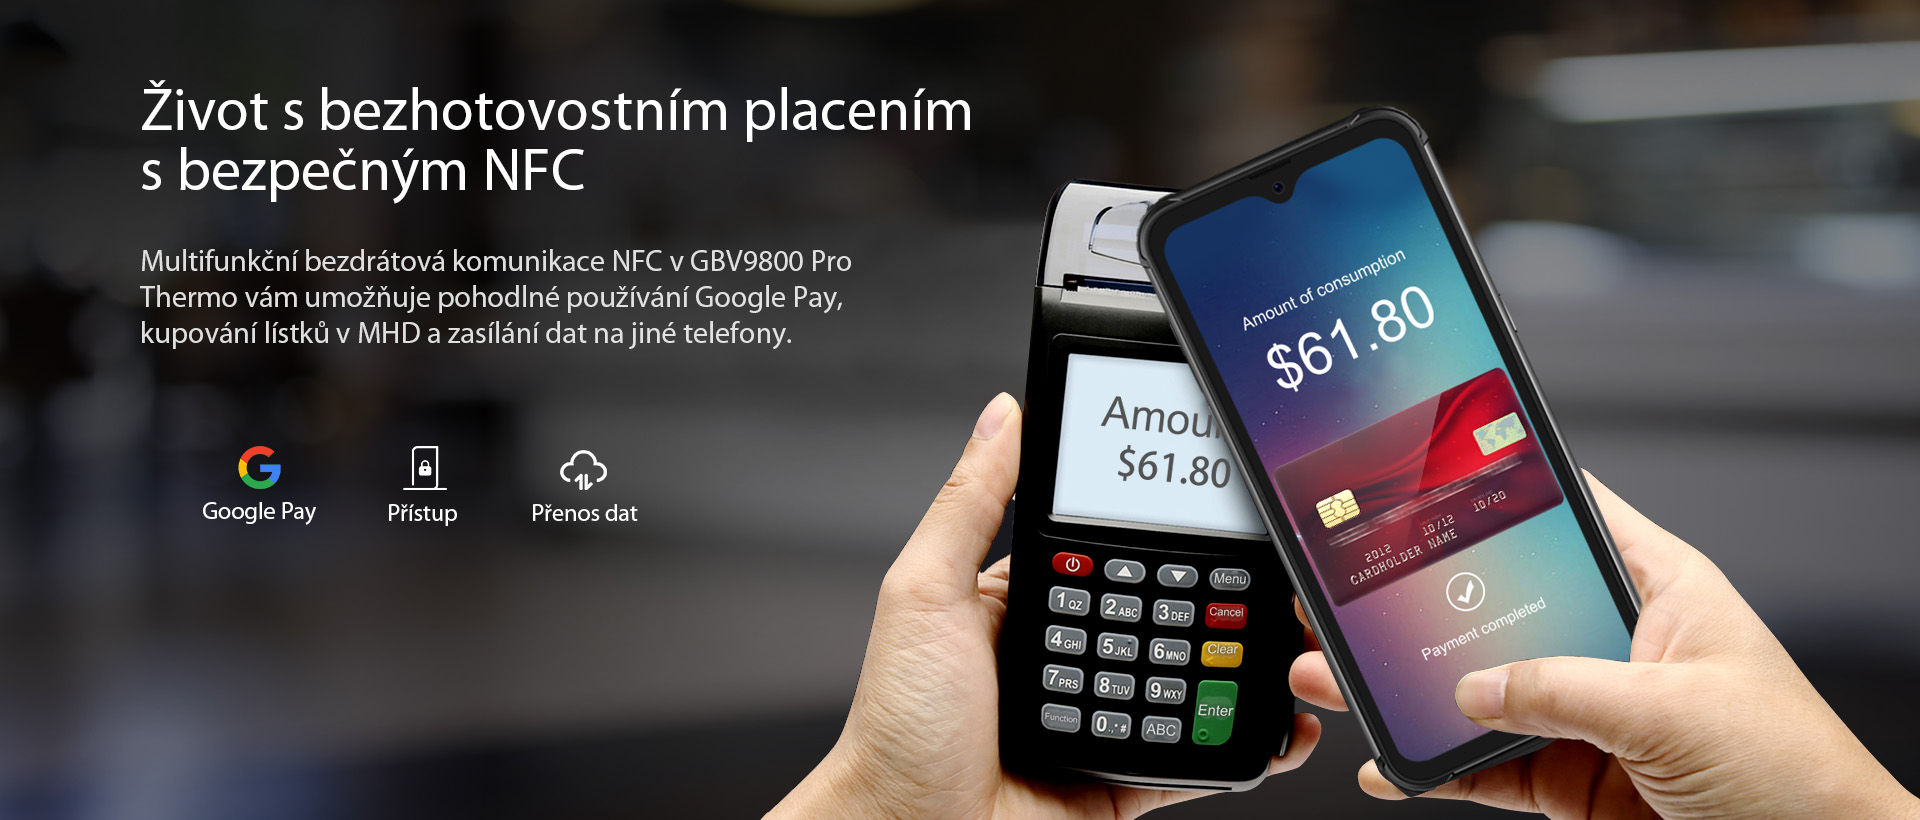 iGET BLACKVIEW GBV9800 Pro Thermo